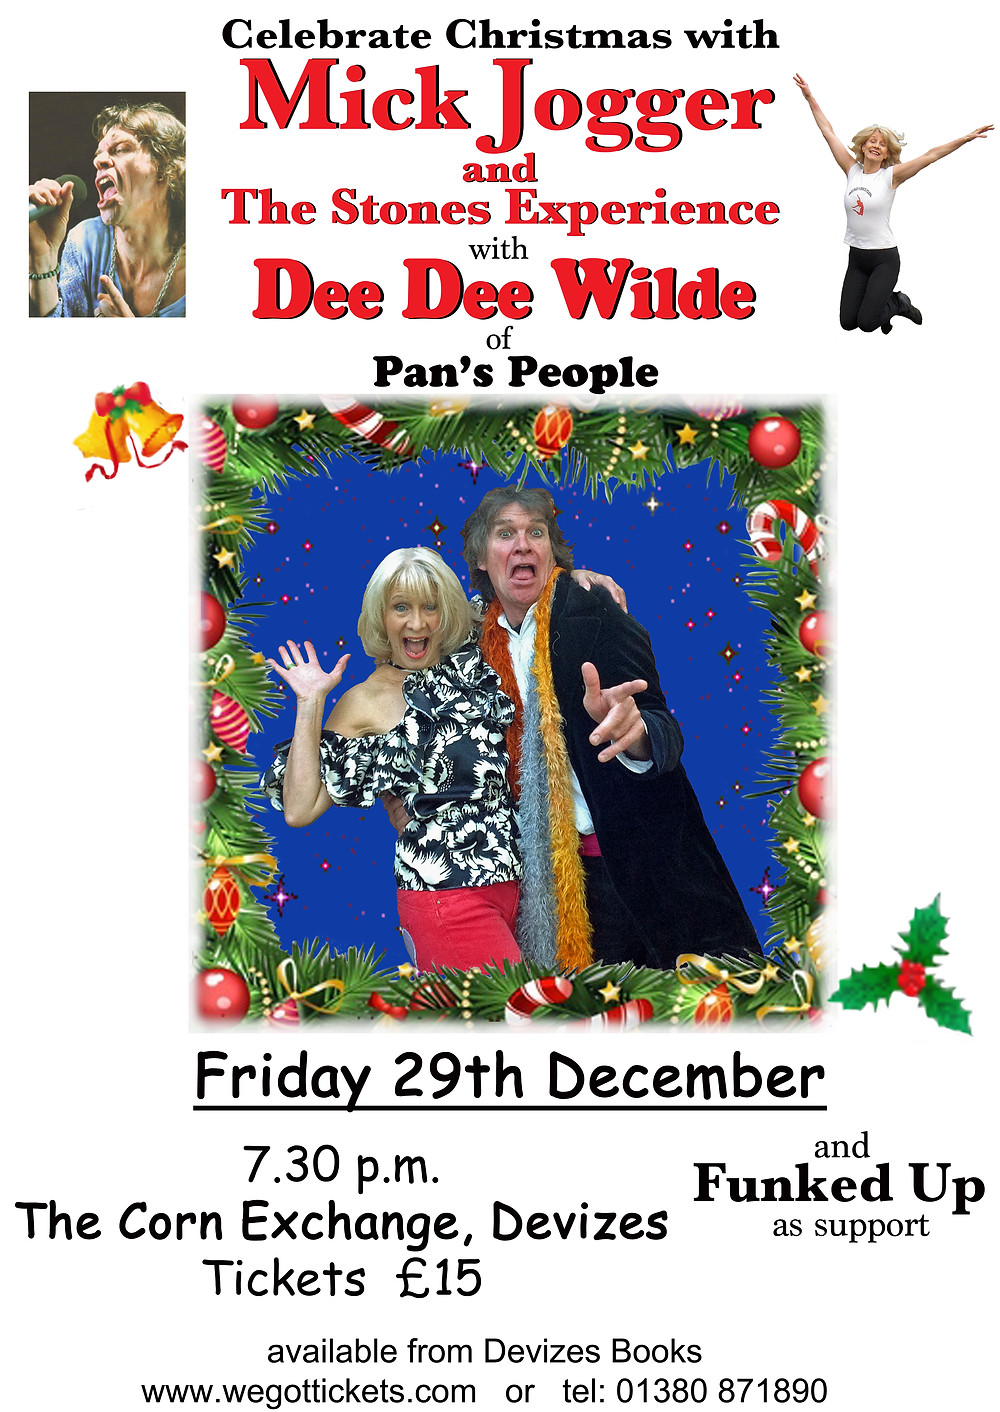 On Friday the 29th of December I'll be moving and grooving with Mick, get off that sofa and come and join us.